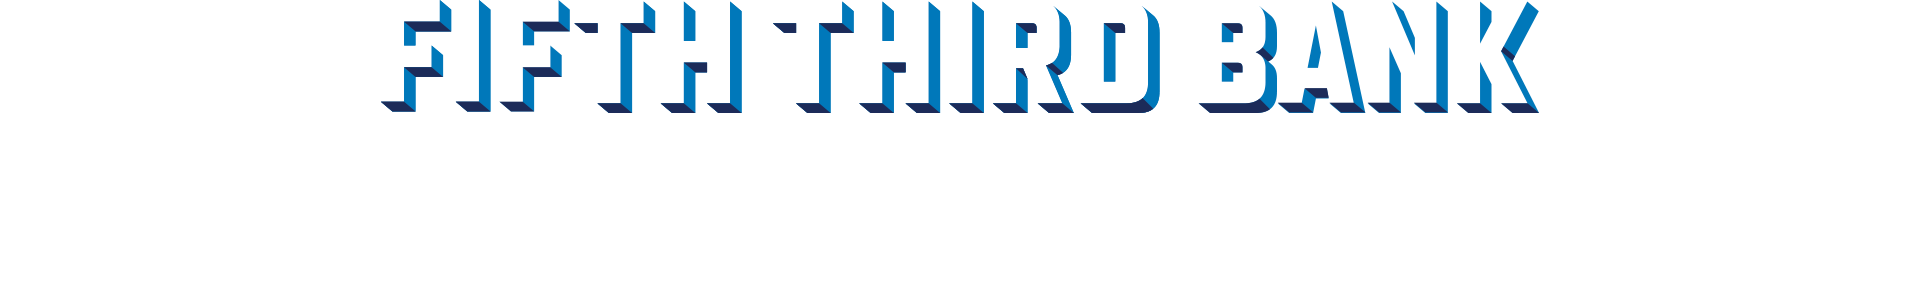 HEADER_Fifth_third_bank.png